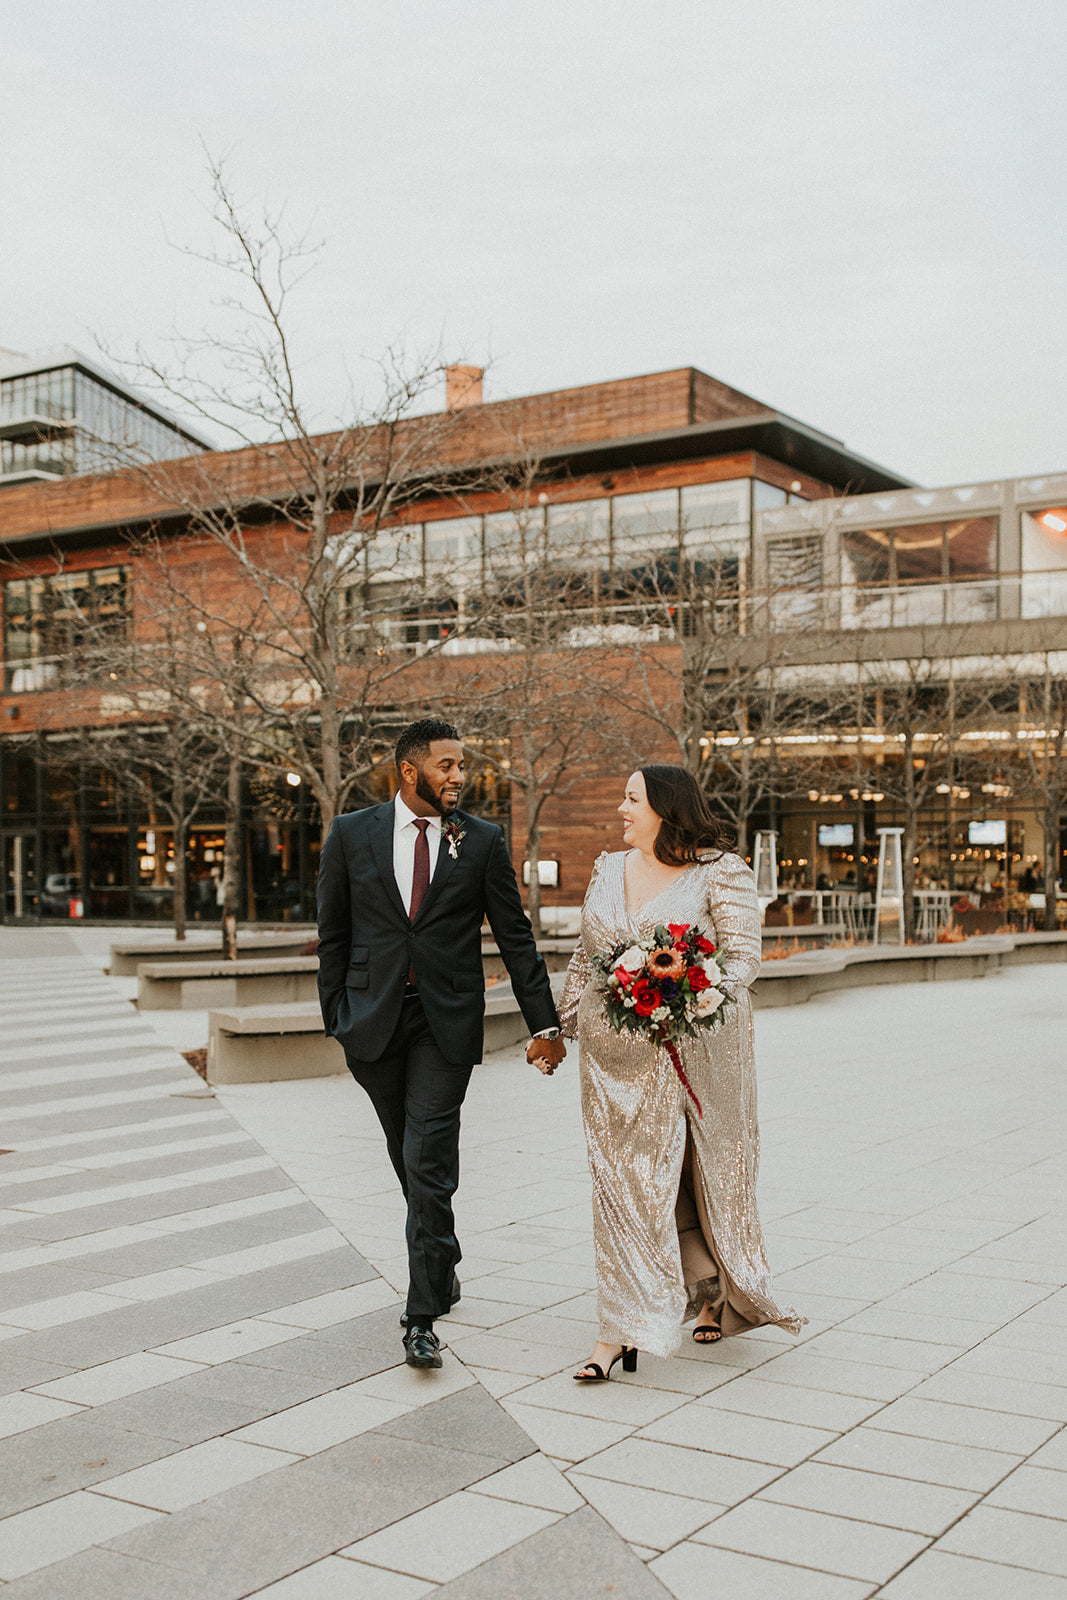 little miss lovely floral design // district winery wedding washington dc // deep red winter wedding florals